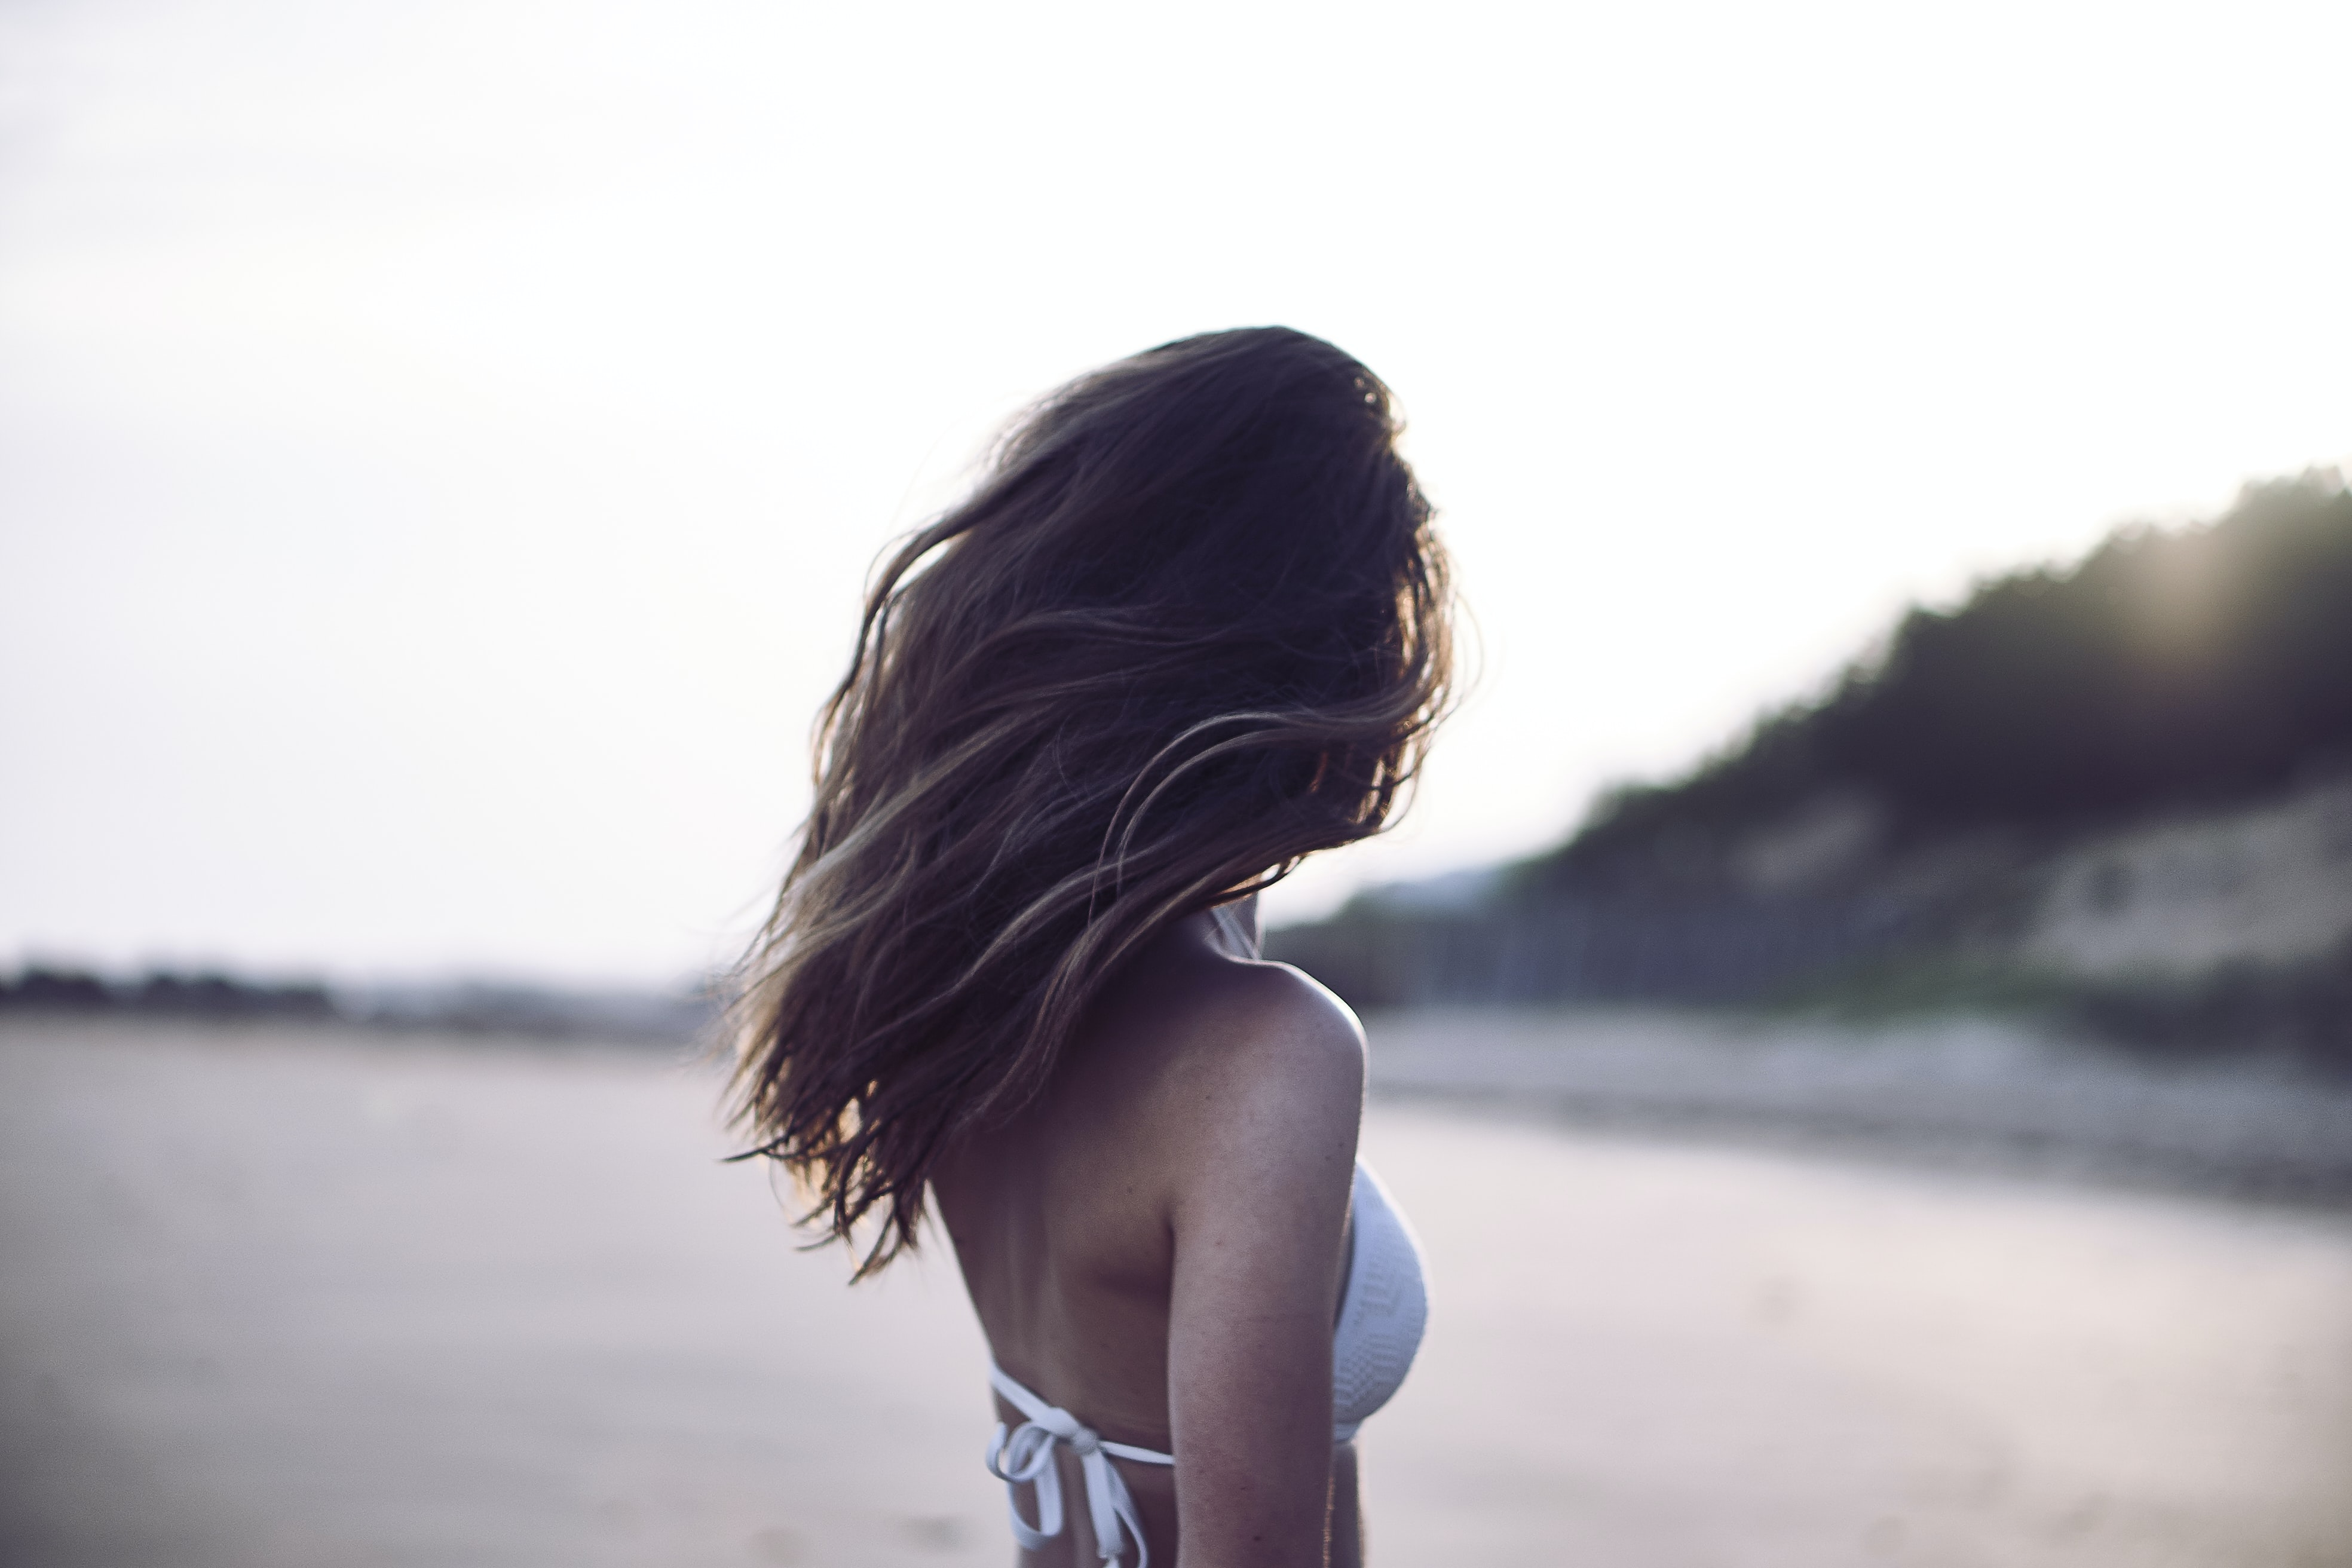 woman standing wearing white bra in selective focus photography